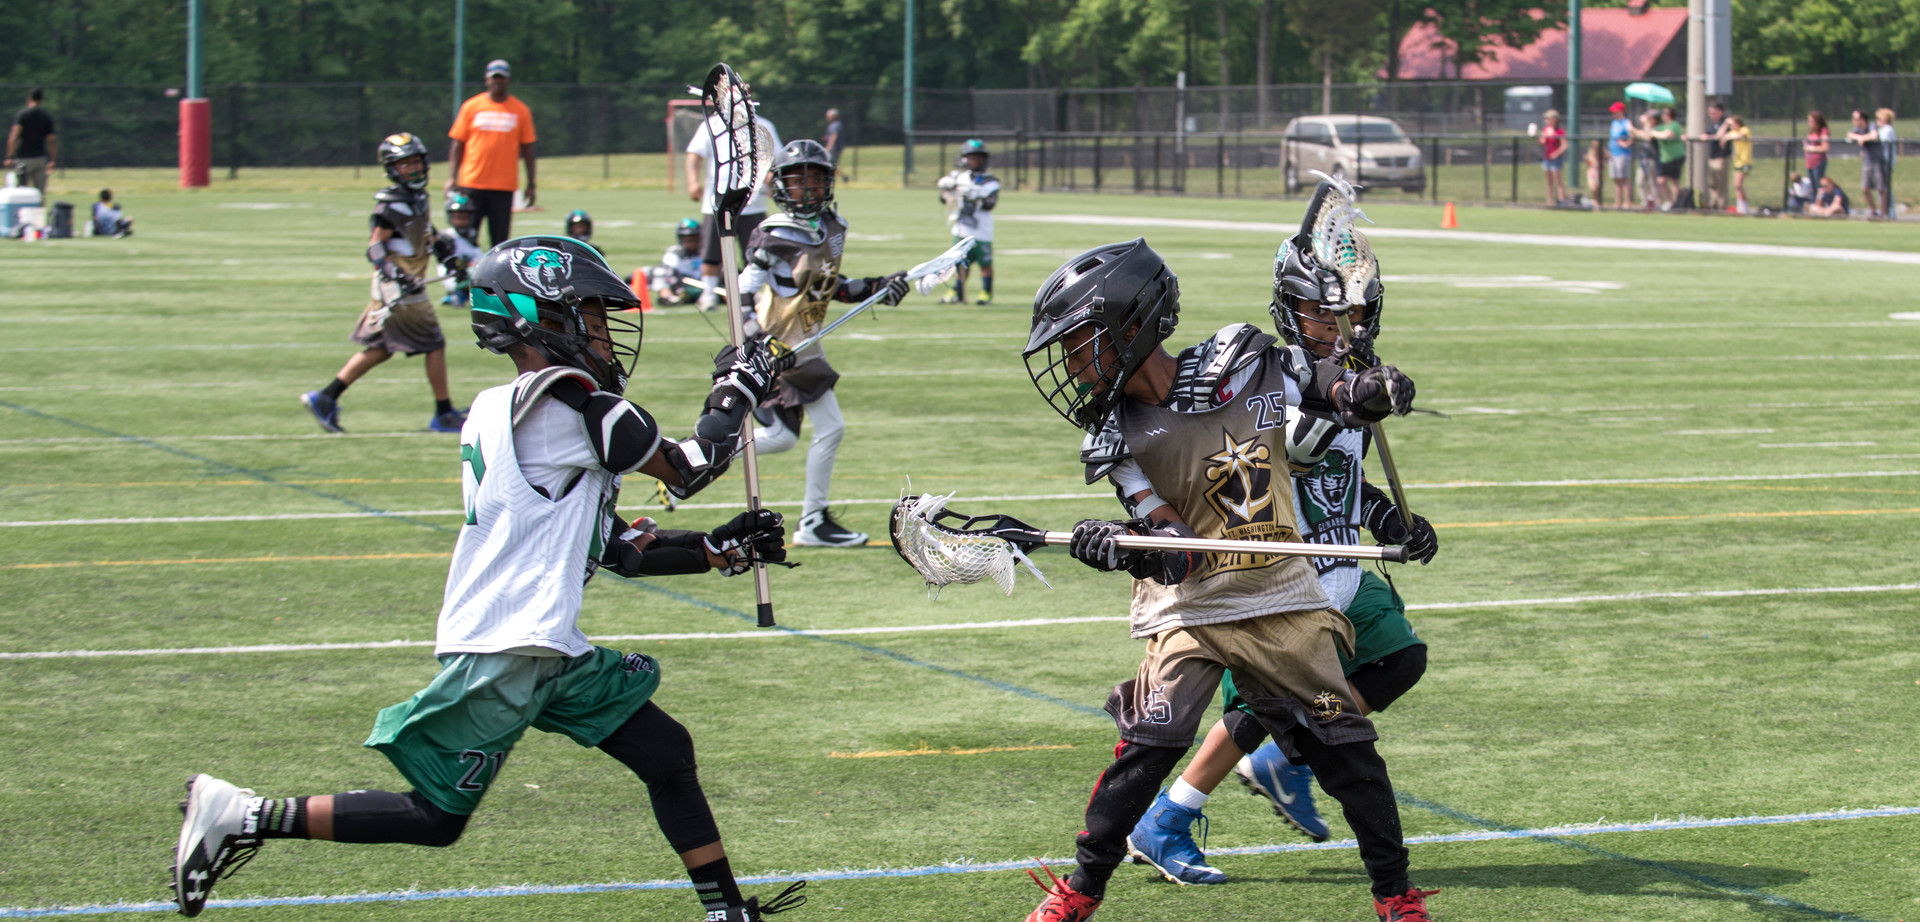 walker-mill-lacrosse-18-03_43182373951_o